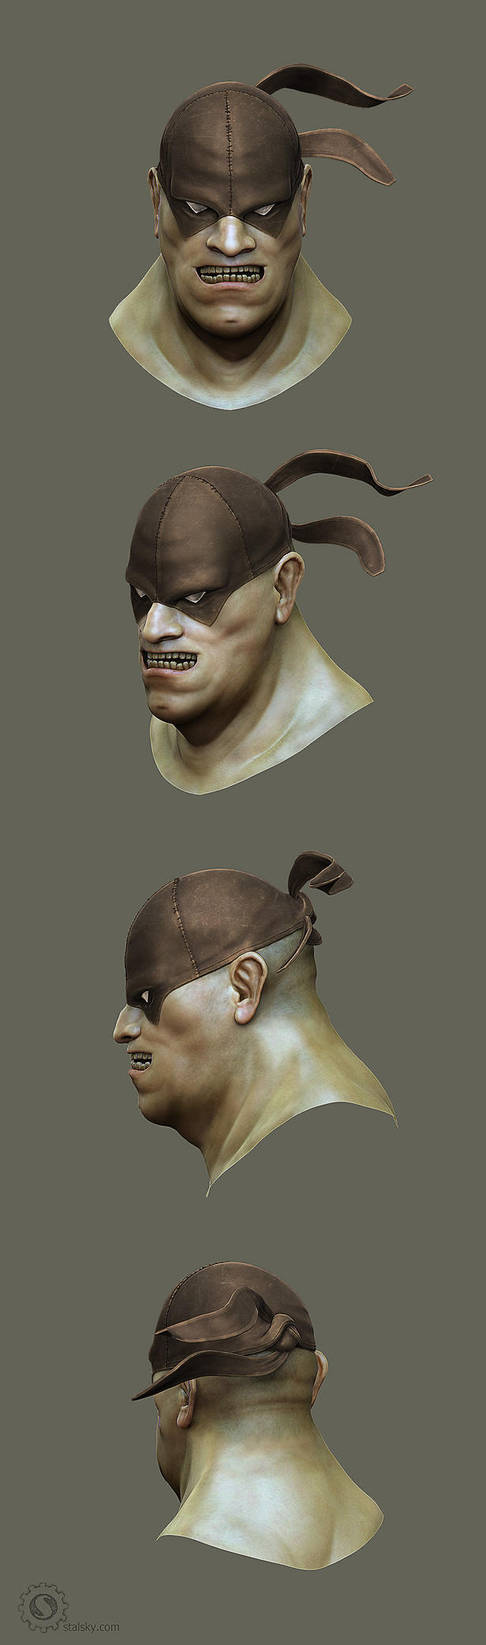 Boss head by stalsky